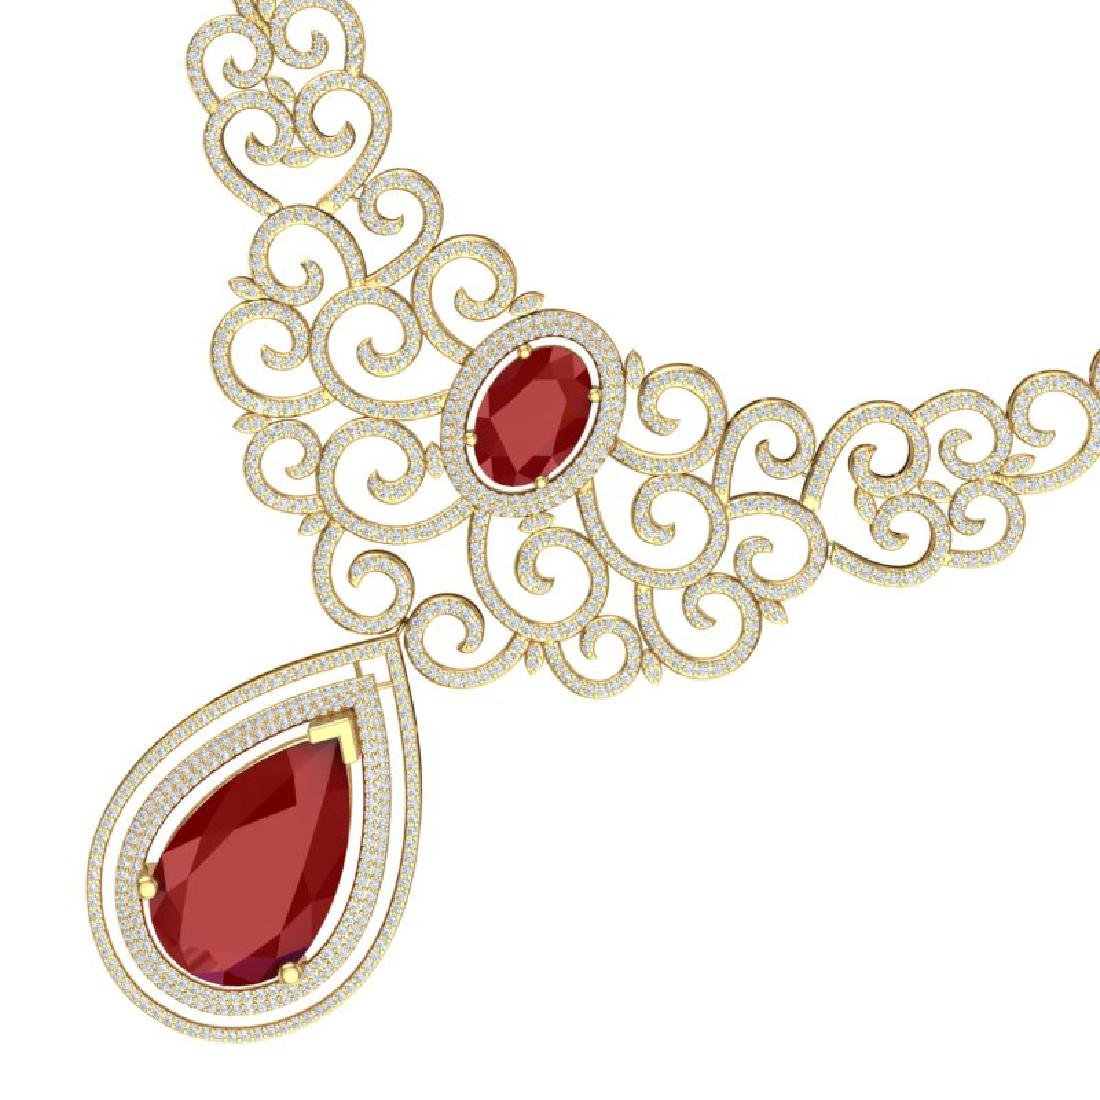 87.52 CTW Royalty Ruby & VS Diamond Necklace 18K Gold